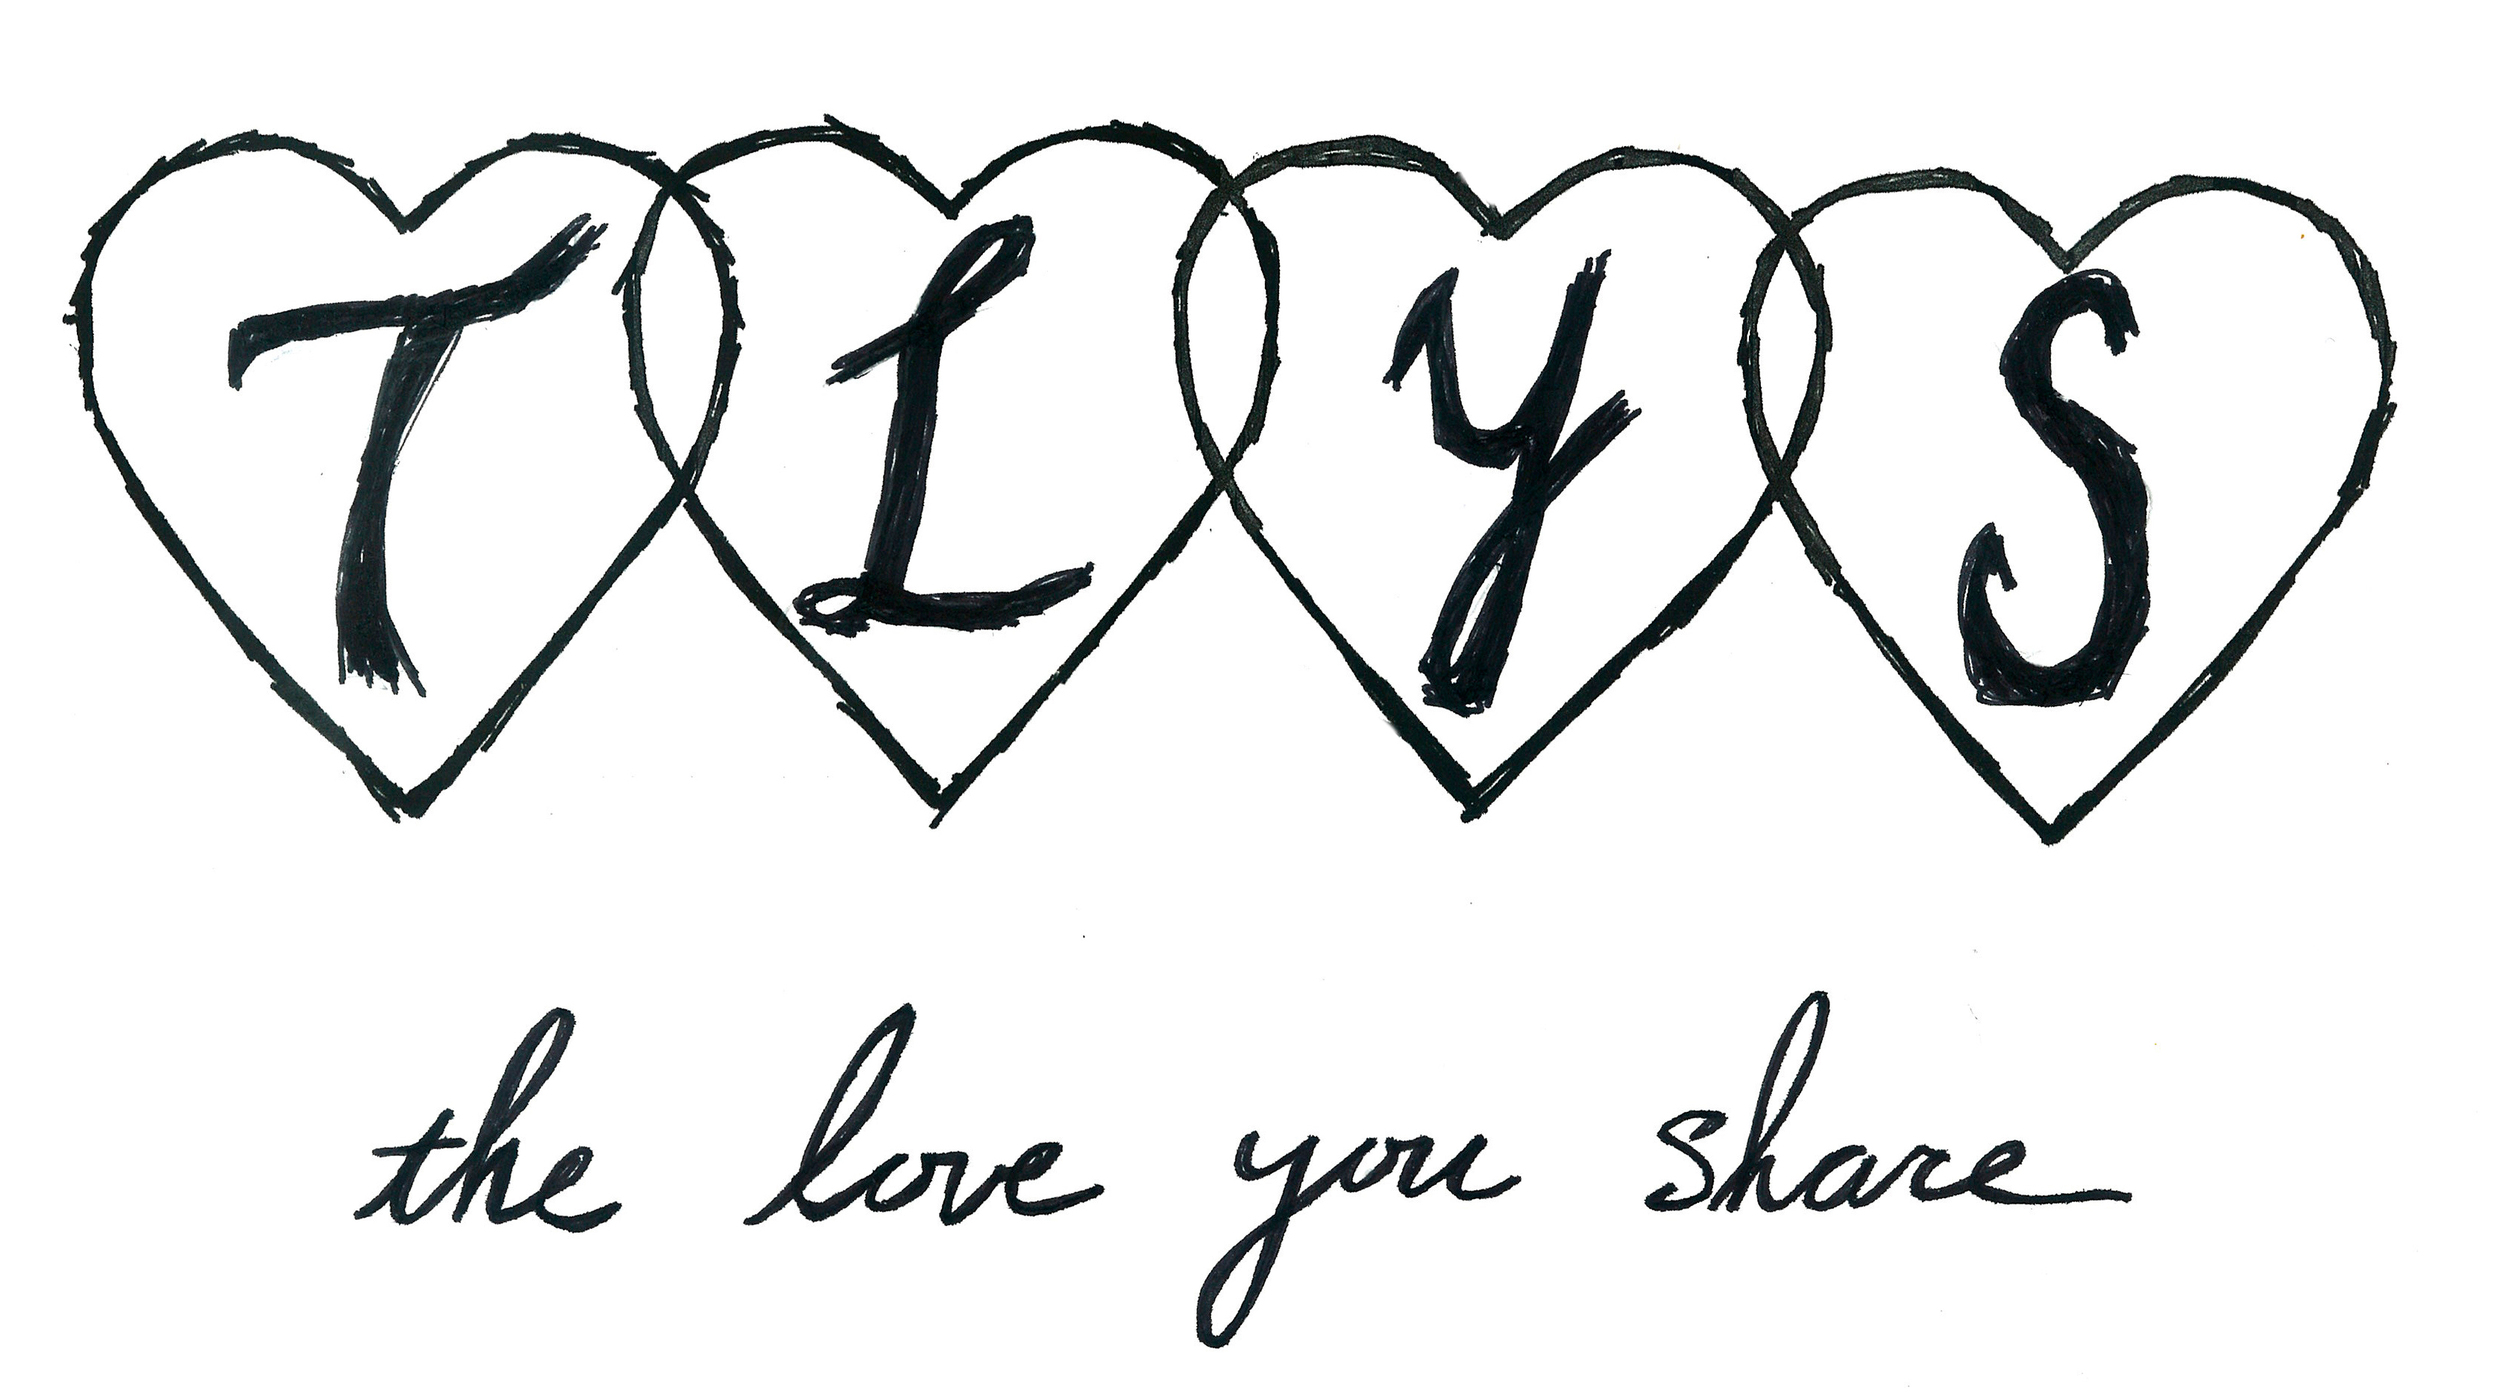 Theloveyoushare-CROP.jpg